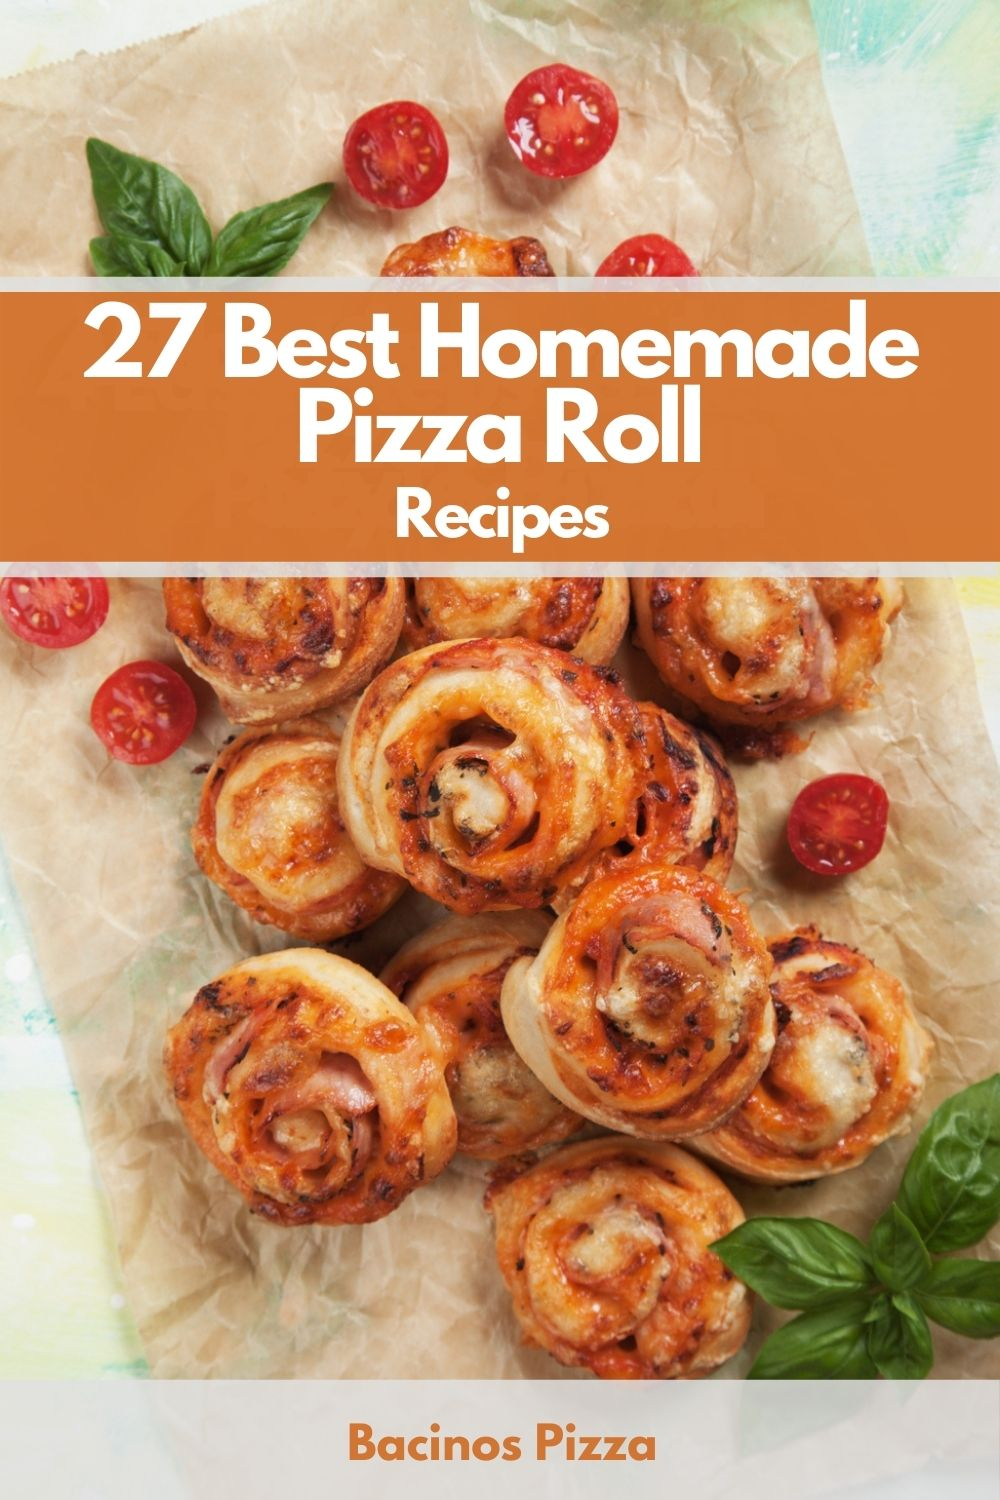 27 Best Homemade Pizza Roll Recipes pin